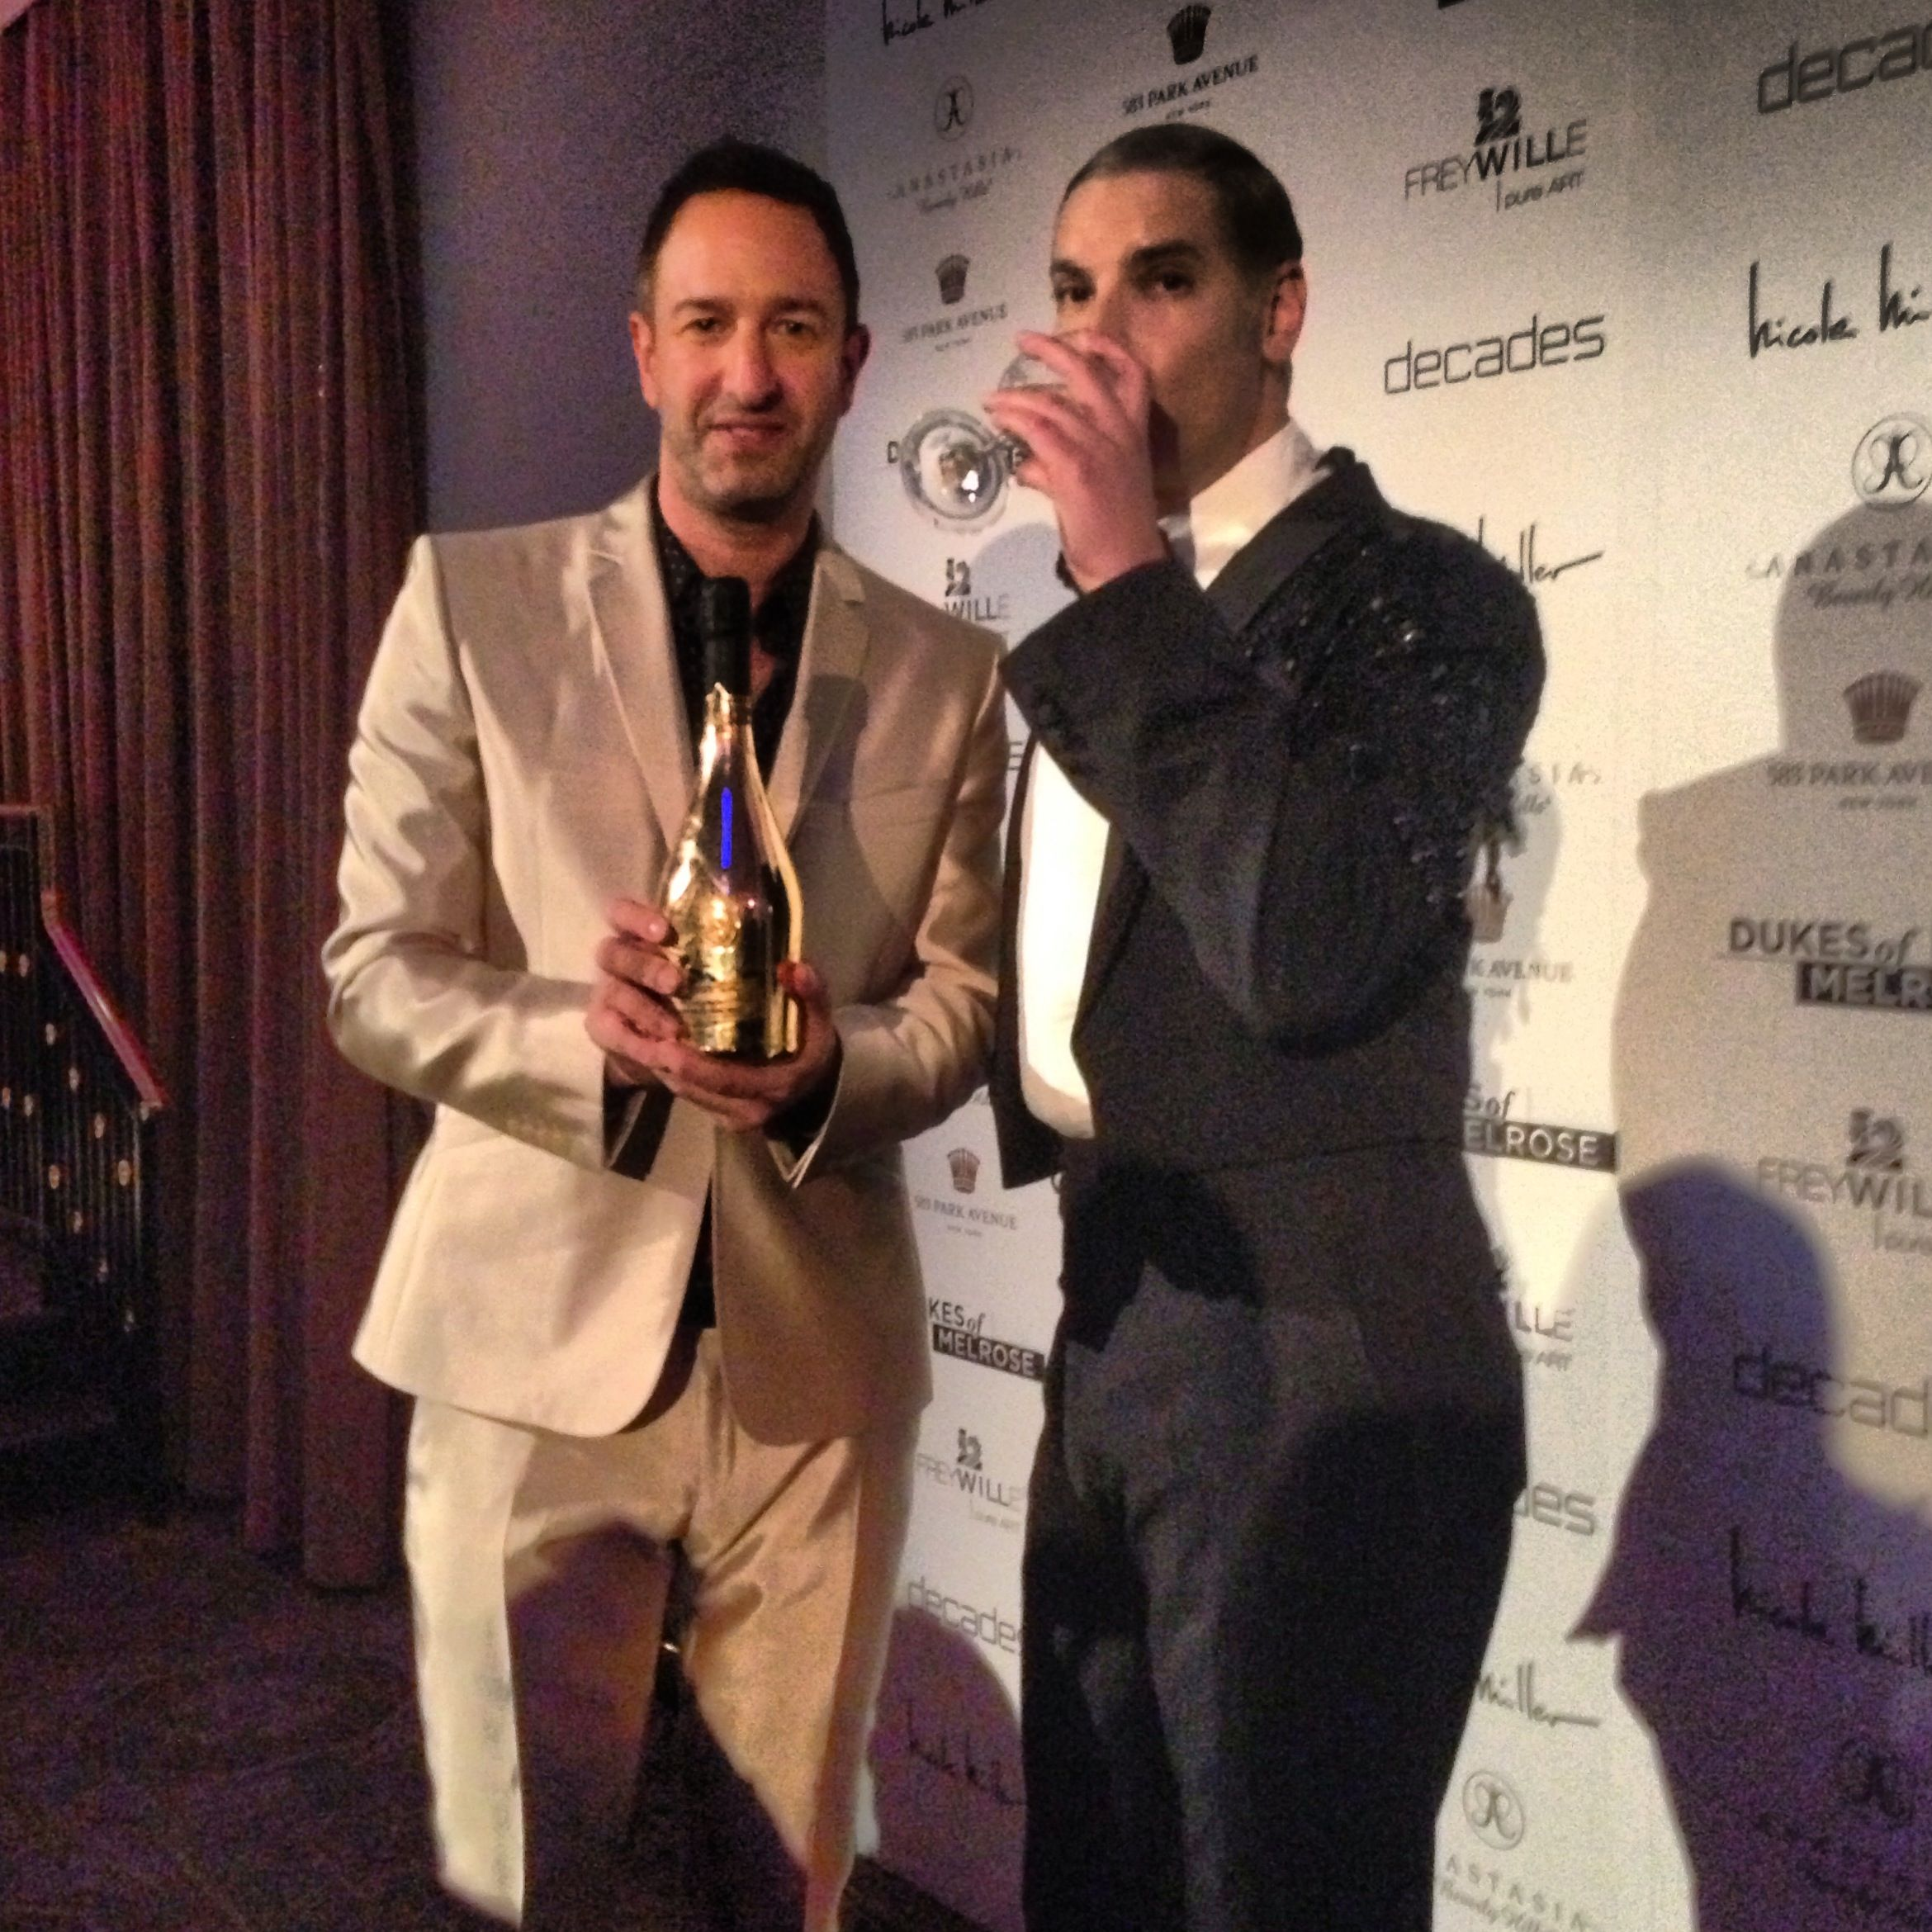 Christos and Cameron had the Armand de Brignac Brut at their Dukes of Melrose premiere party.